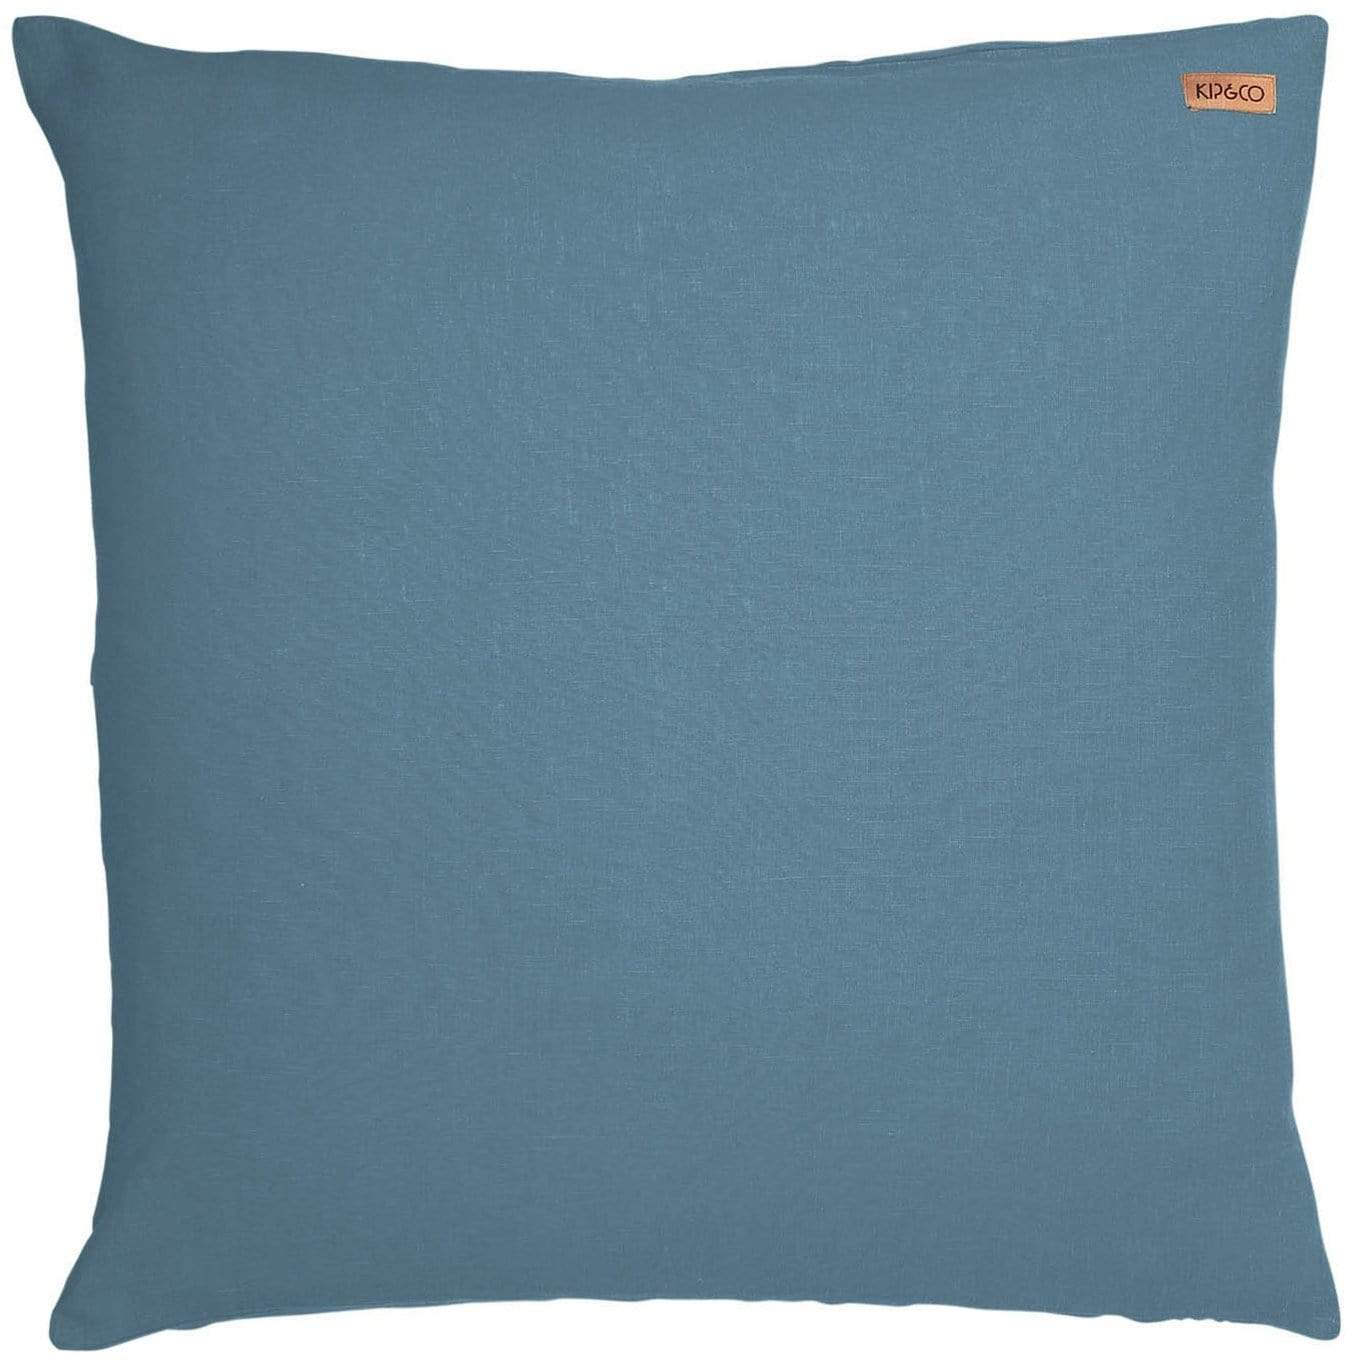 Kip Co Slate Linen Euro Sham Meadow Blu